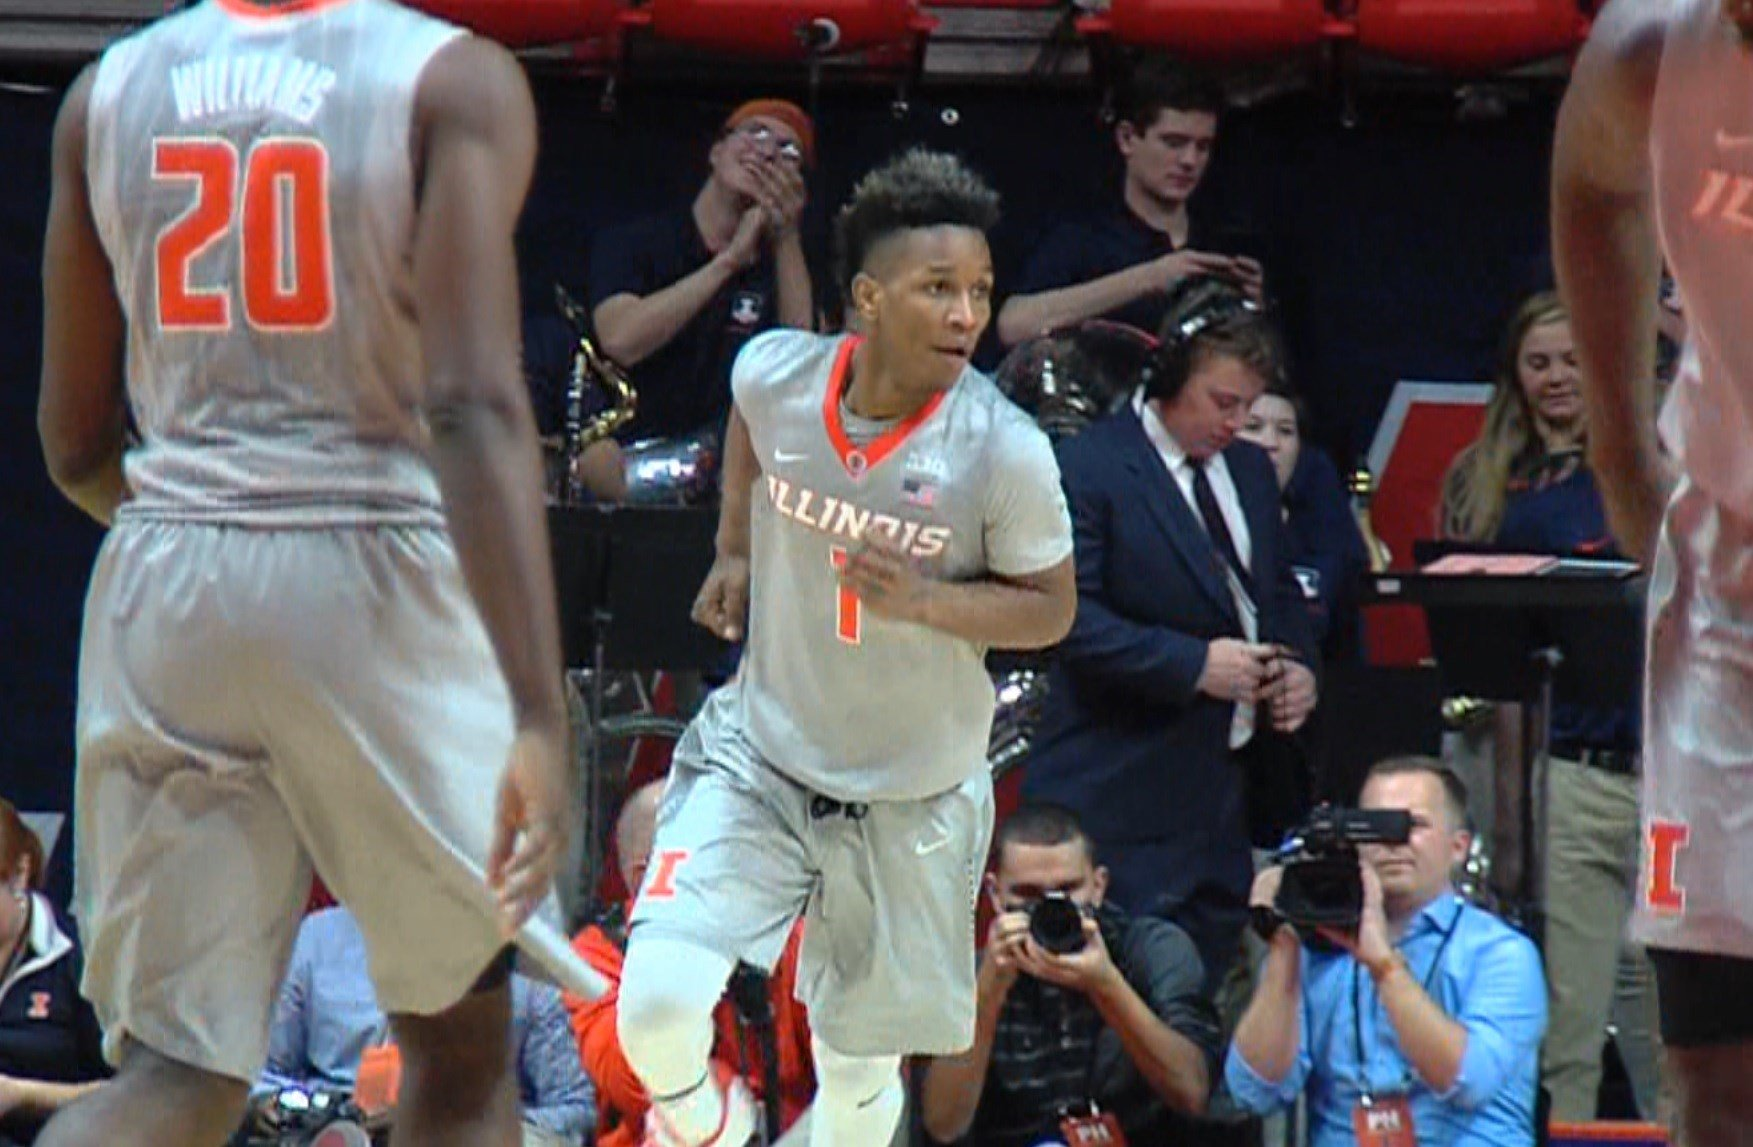 Illini freshman guard Trent Frazier scored a career-high 20 points to go with 4 steals, 4 rebounds and 4 assists in Illinois' commanding 92-45 win over Longwood on Wednesday in Champaign.